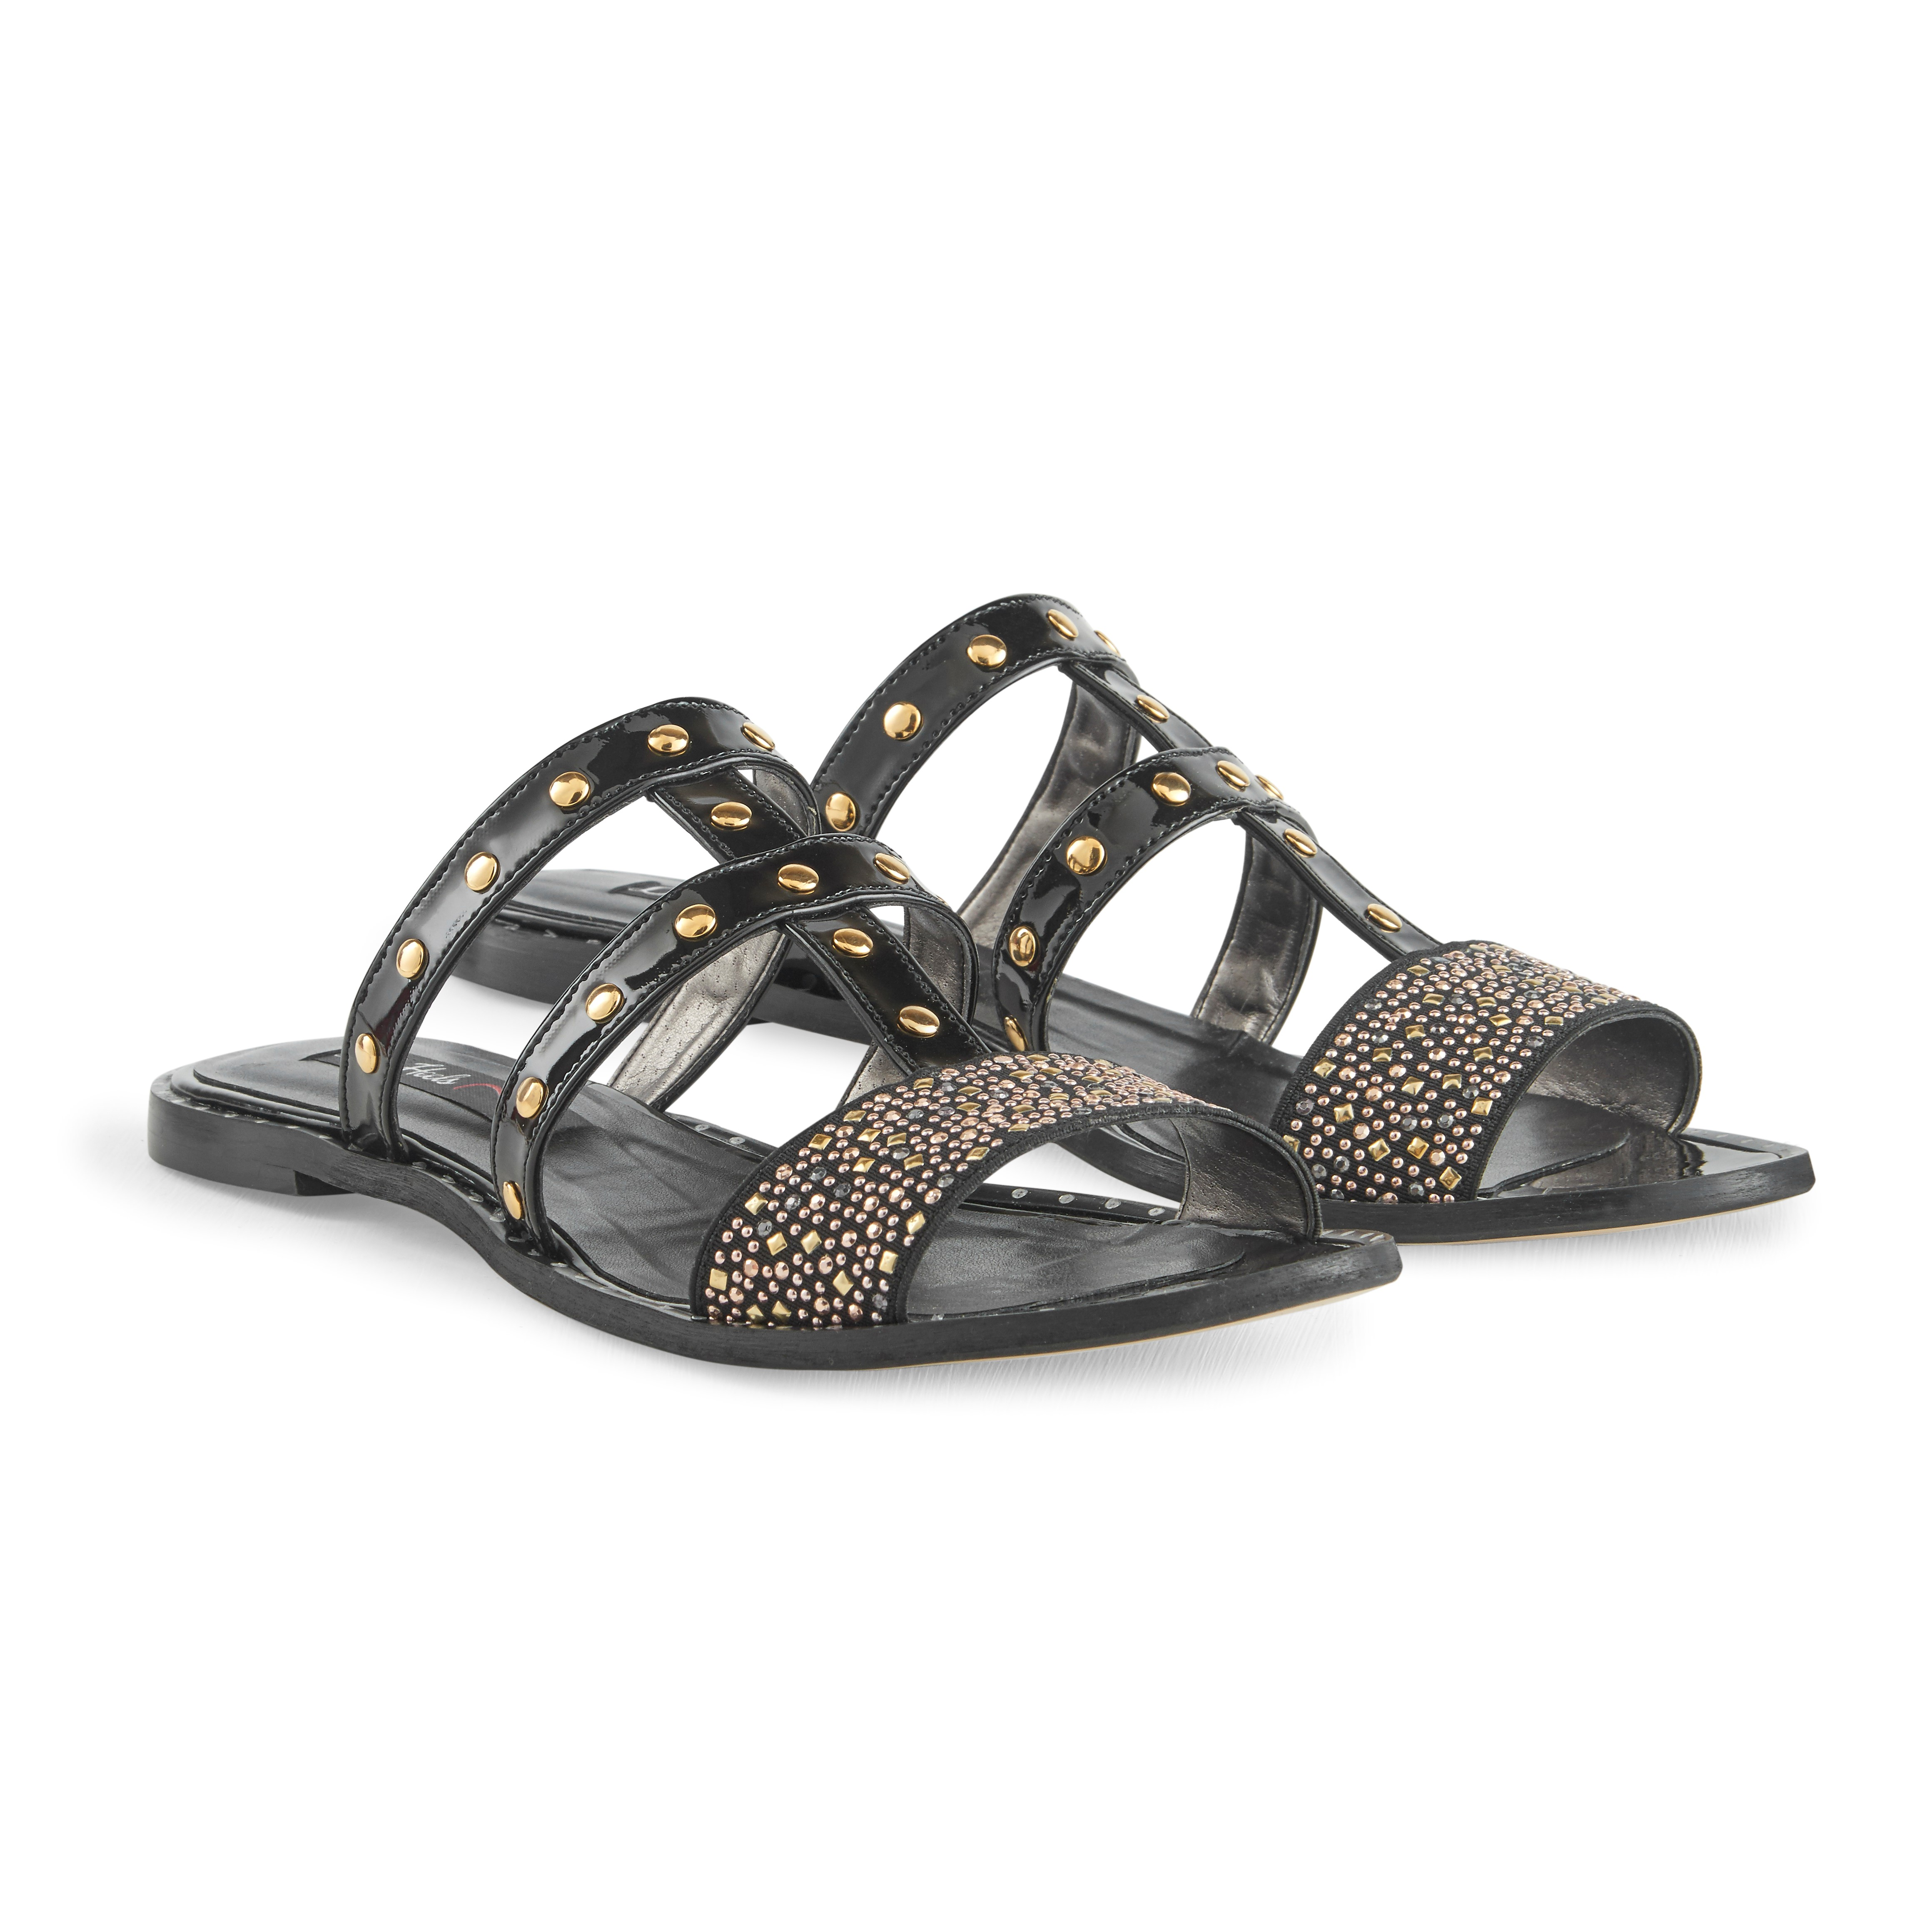 Jade black & gold leather sandals